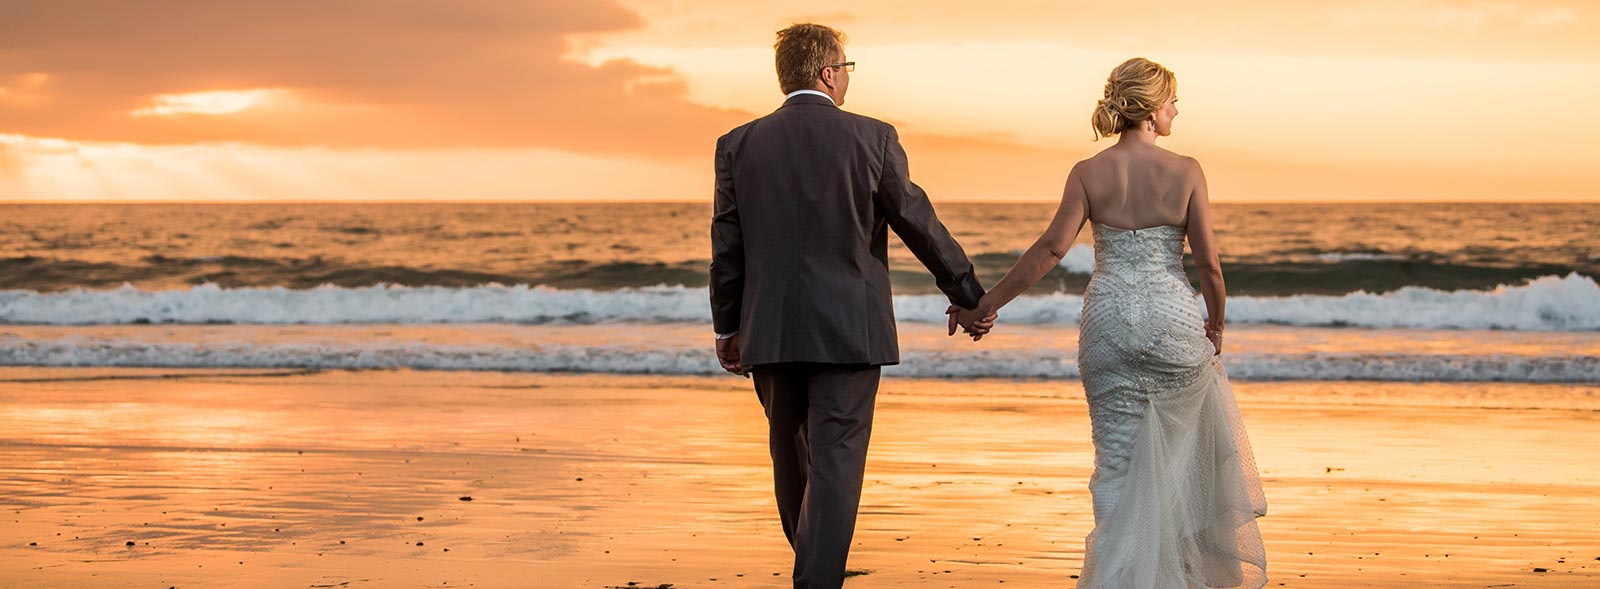 Wedding Venues at La Jolla Shores Hotel, California